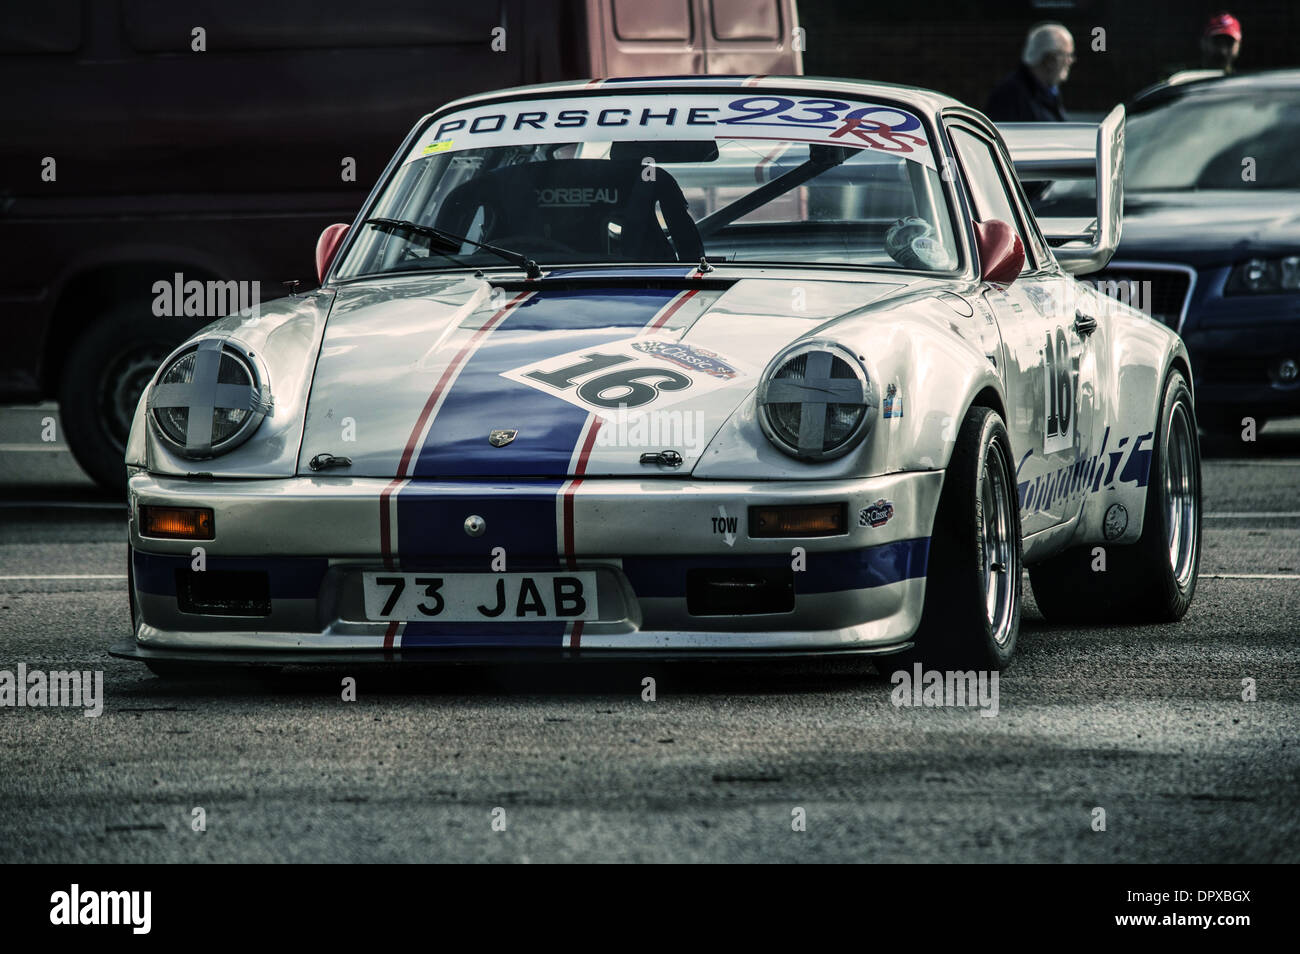 Porsche 930 High Resolution Stock Photography And Images Alamy